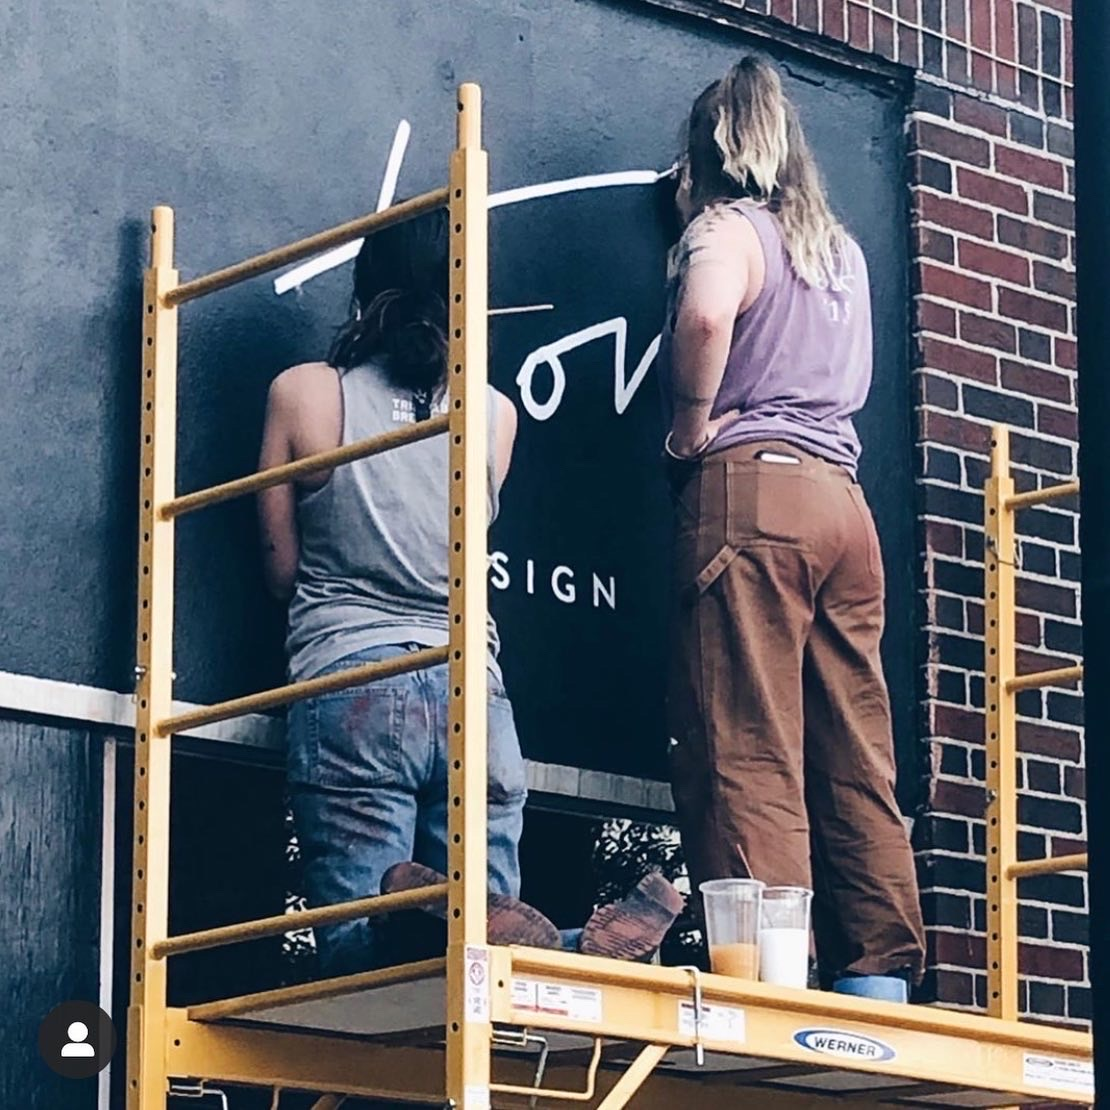 bendyknees design company painting signs at Trove